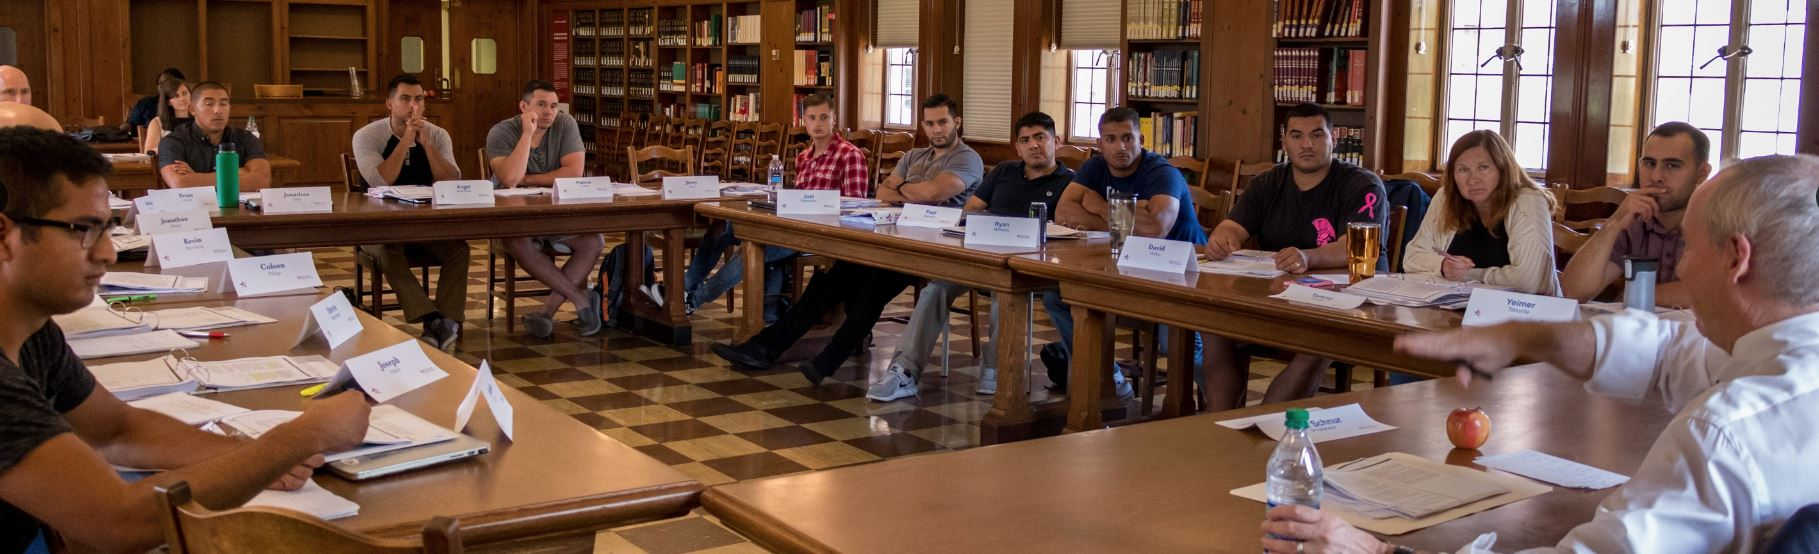 The Warrior-Scholar project gives veterans the opportunity to study texts and ideas that are foundational to democracy.  Here, veterans discuss the Declaration of Independence. Image courtesy of the Warrior-Scholar Project.